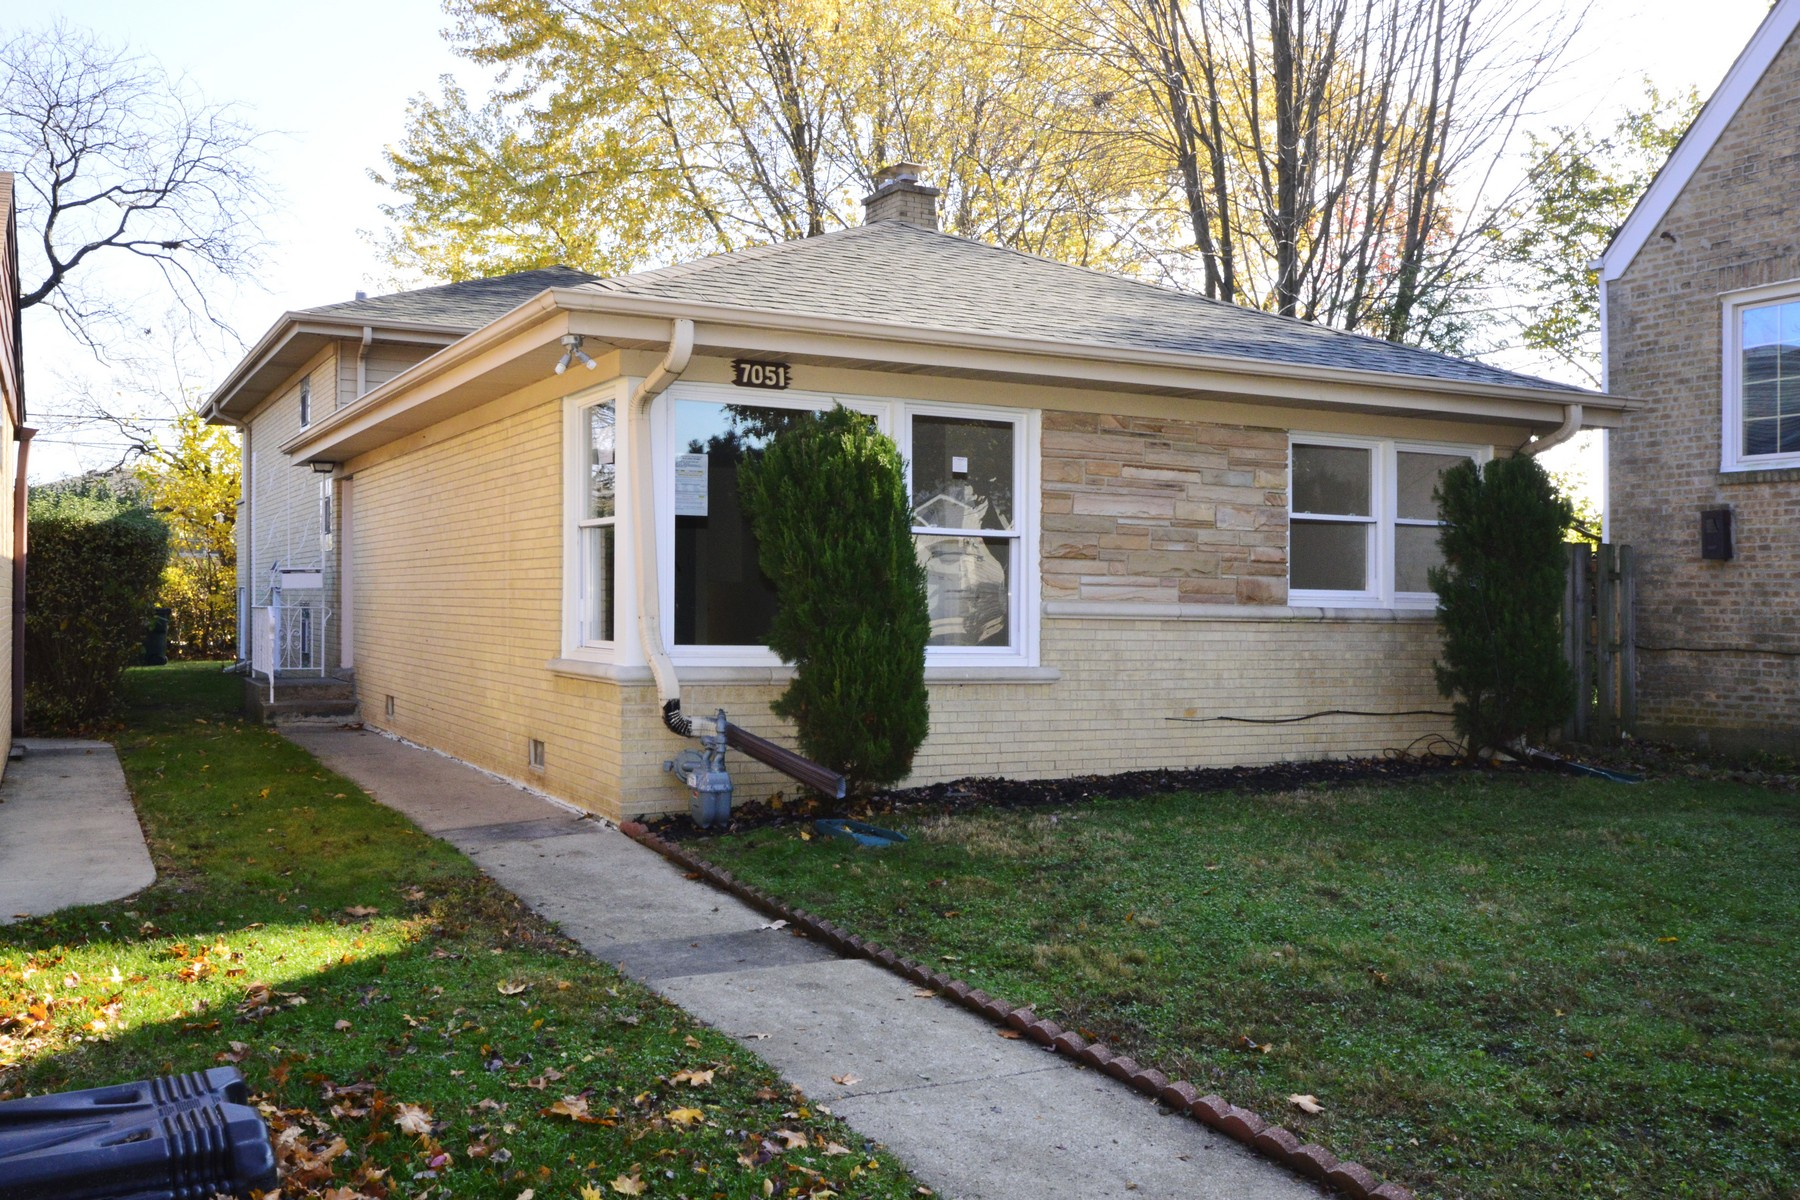 Single Family Home for Sale at Truly Wonderful Home Offers Great Space And Updates 7051 Keystone Avenue Lincolnwood, Illinois, 60712 United States